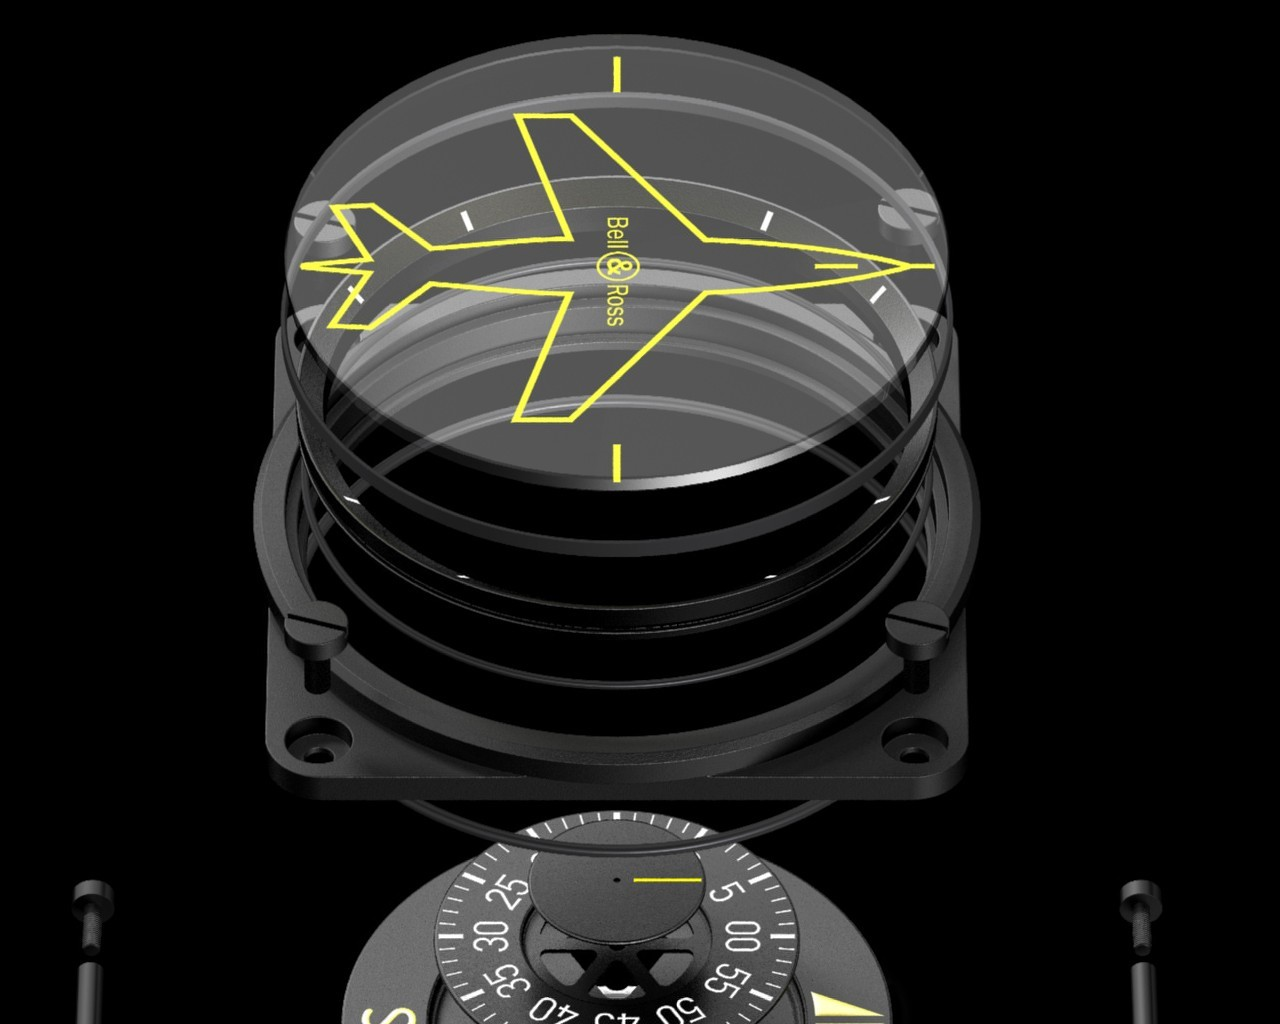 baselworld-2013-bell-ross-collezione-aviaton-br01-heading-indicator_0-100_4